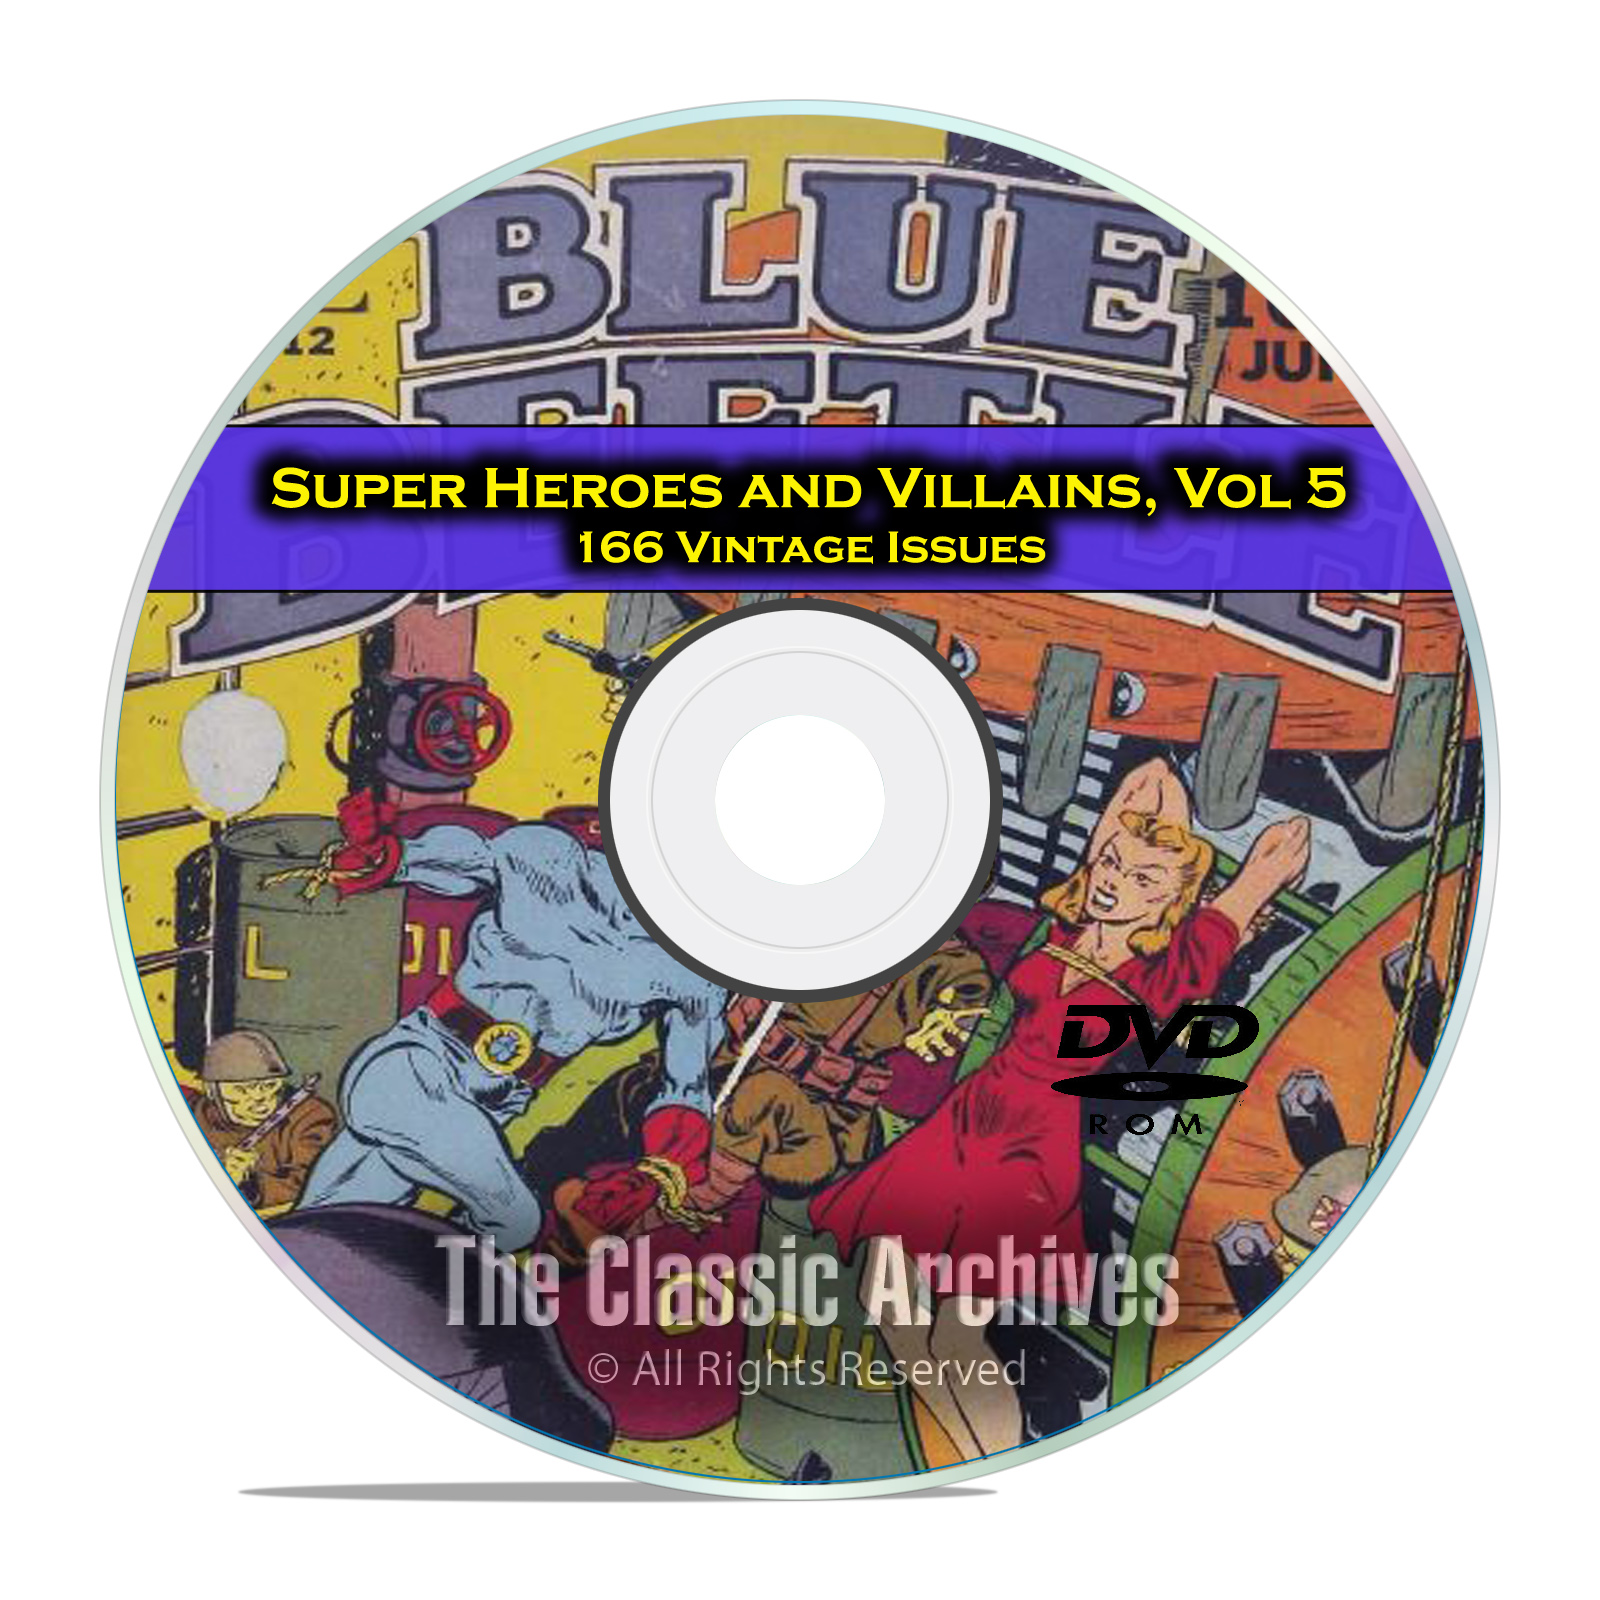 Super Hero Villains, Vol 5, Blue Beetle, Green Hornet Golden Age Comics DVD